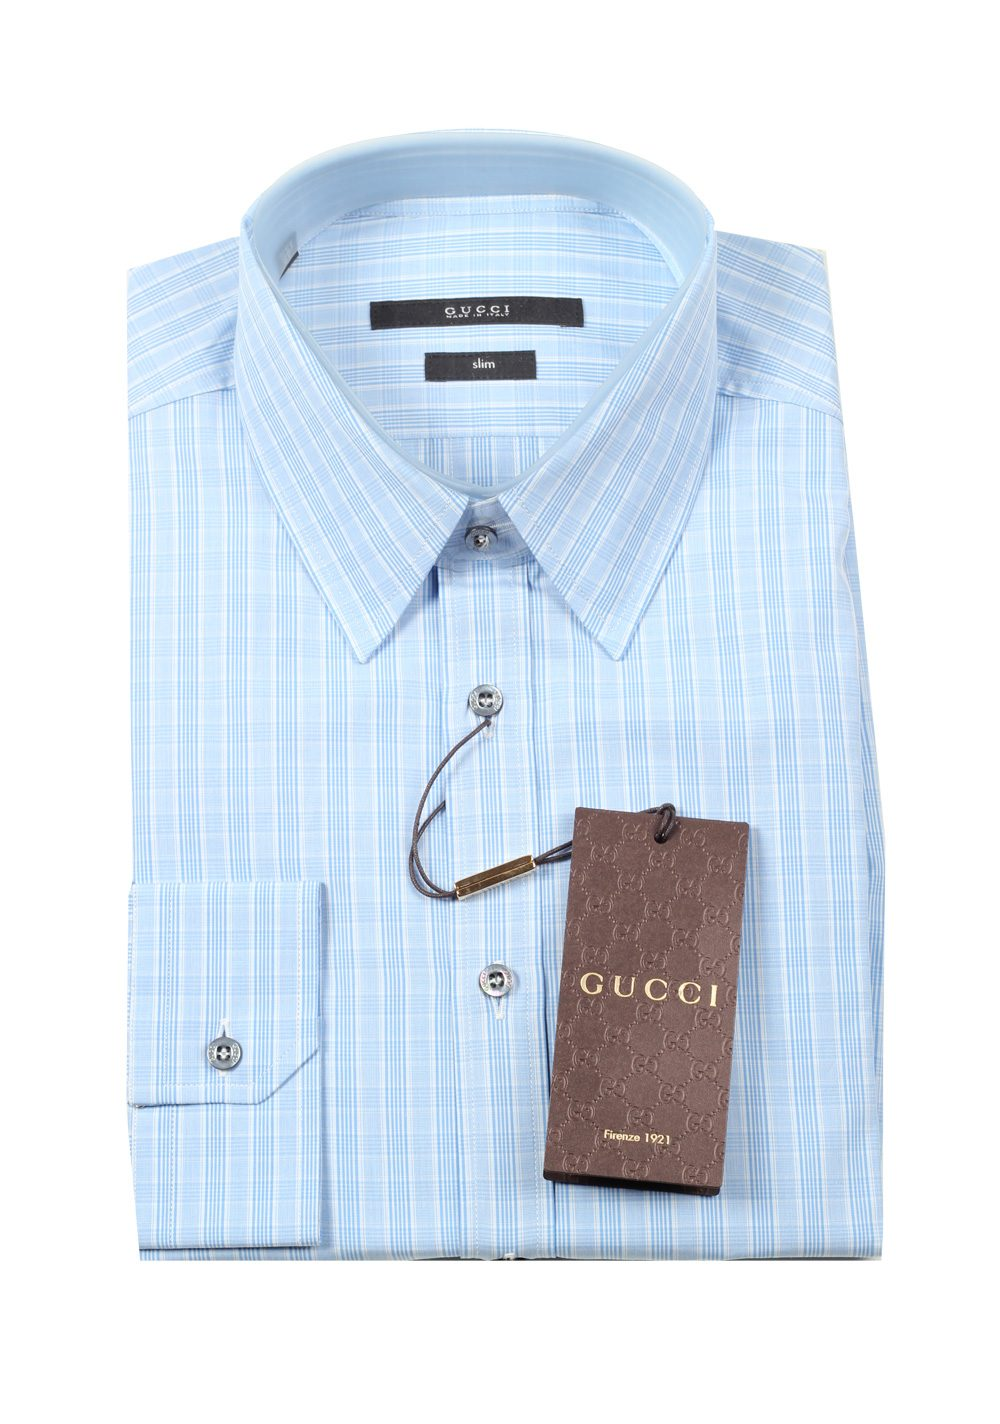 Gucci checked blue dress shirt size 40 15 75 u s slim for Size 15 dress shirt